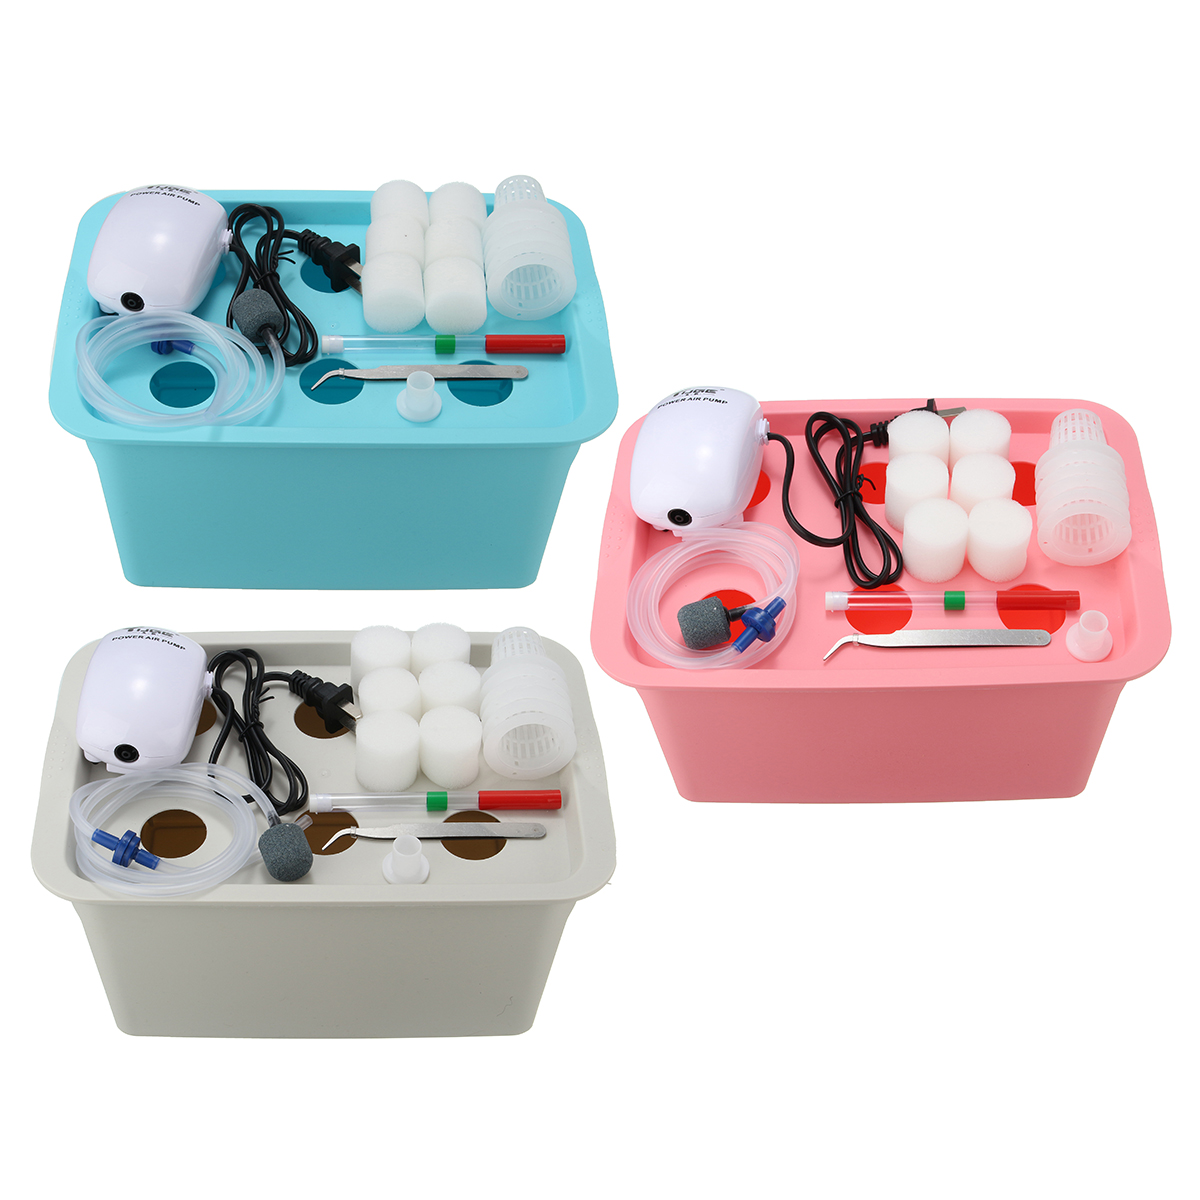 220V Hydroponic Grow Box 6 Holes DWC Hydroponic System Kit Indoor Water Planting Container 3 Colors